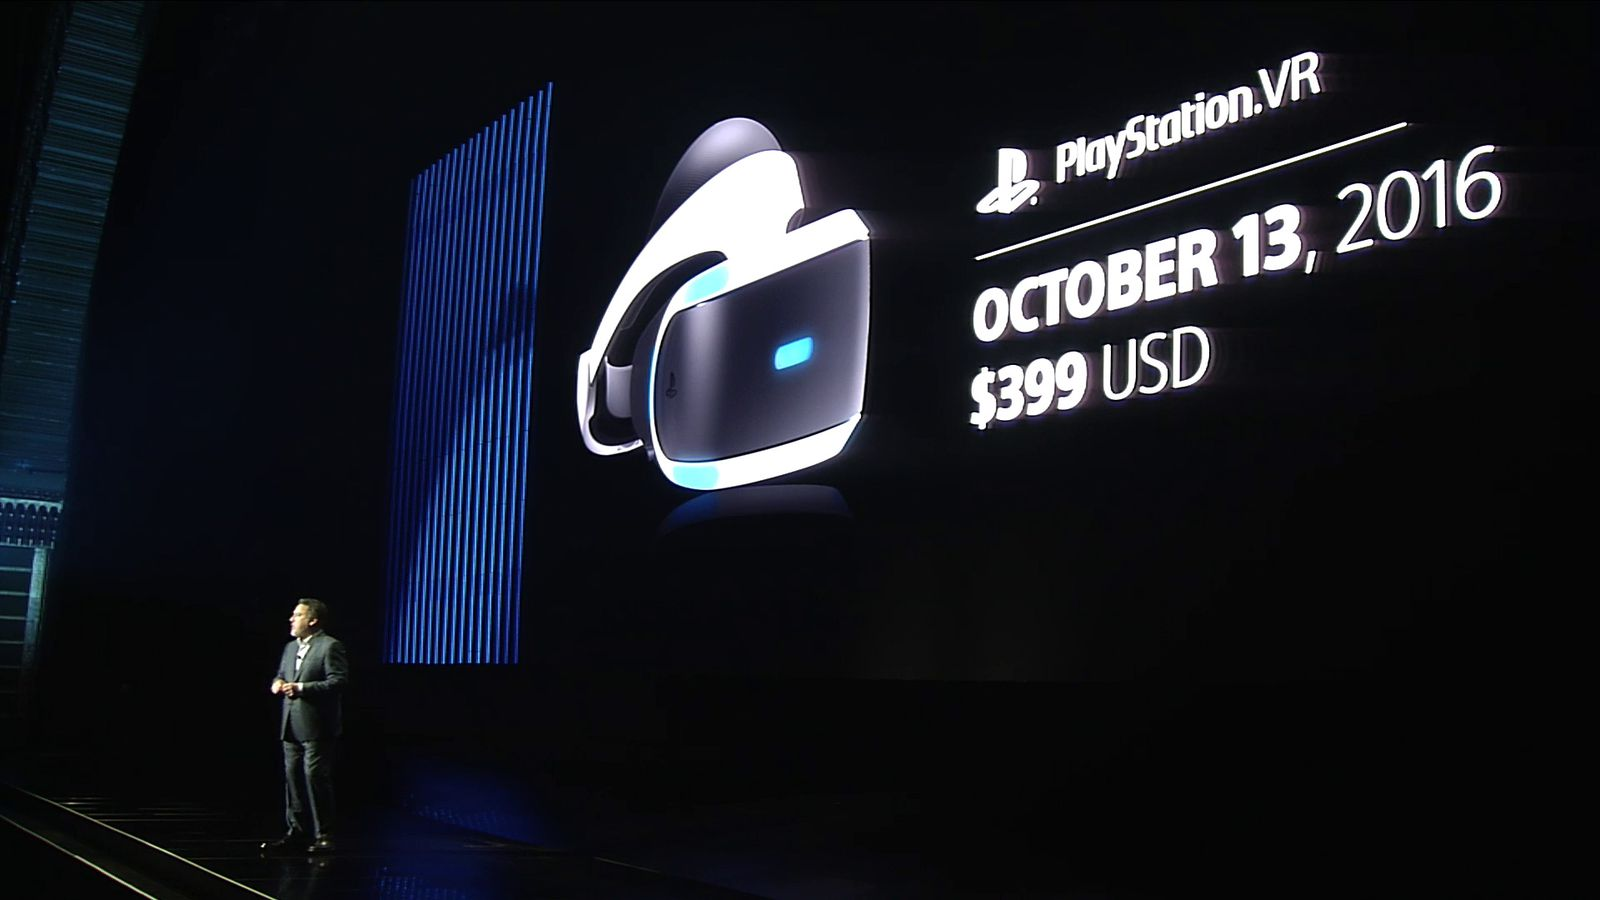 Playstation 6 release date in Sydney